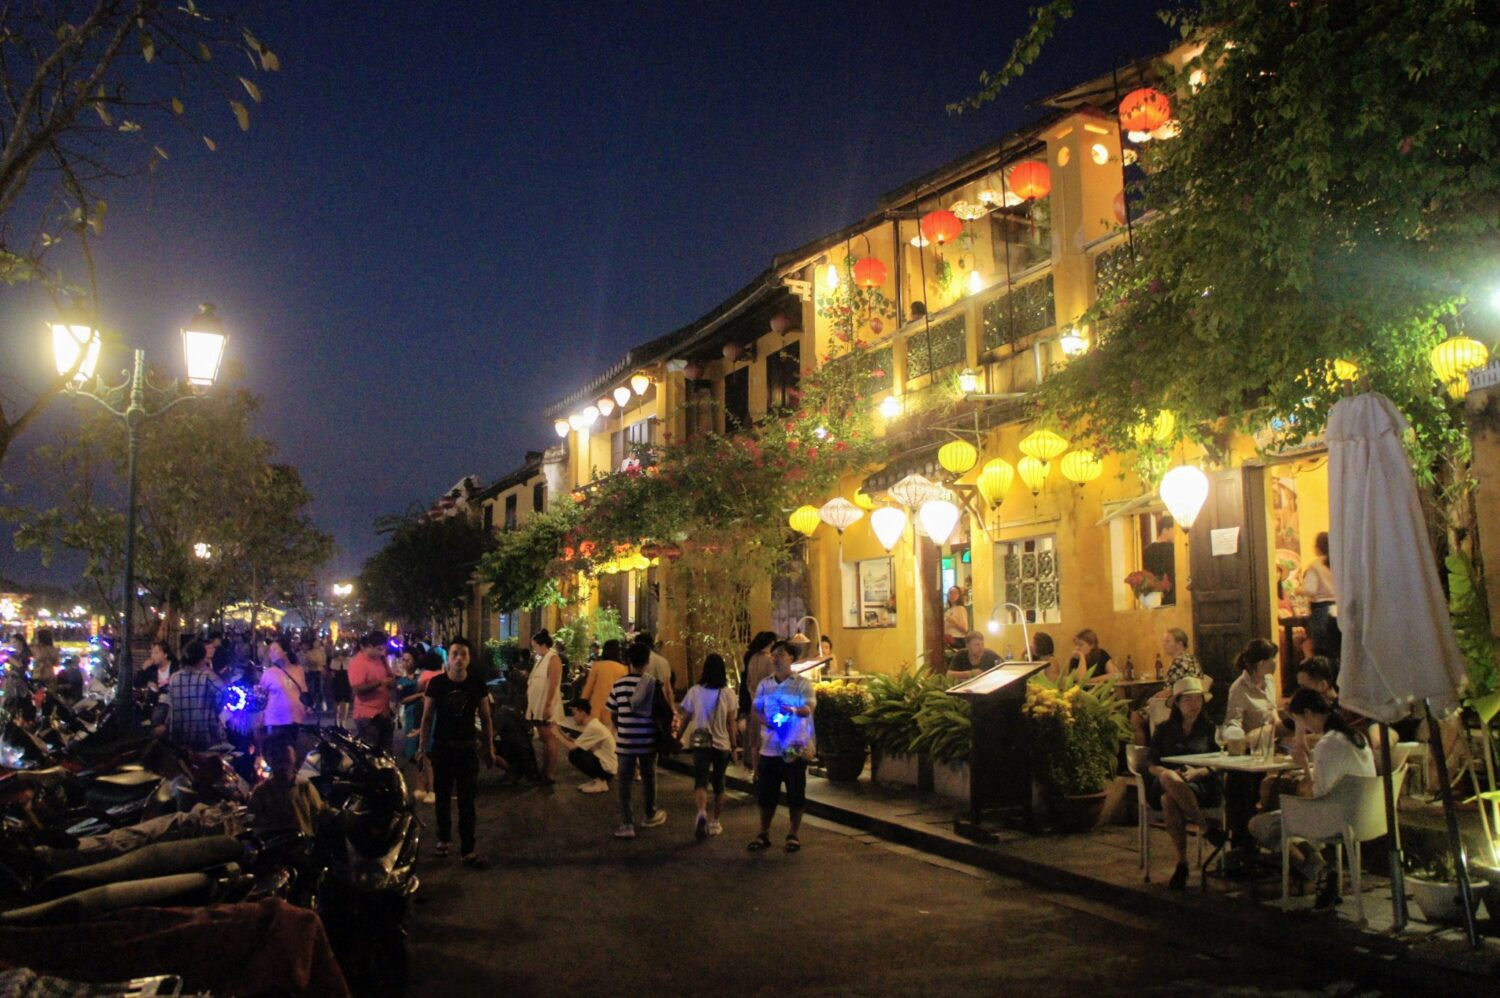 riverside buildings in hoi an ancient town lit by lanters